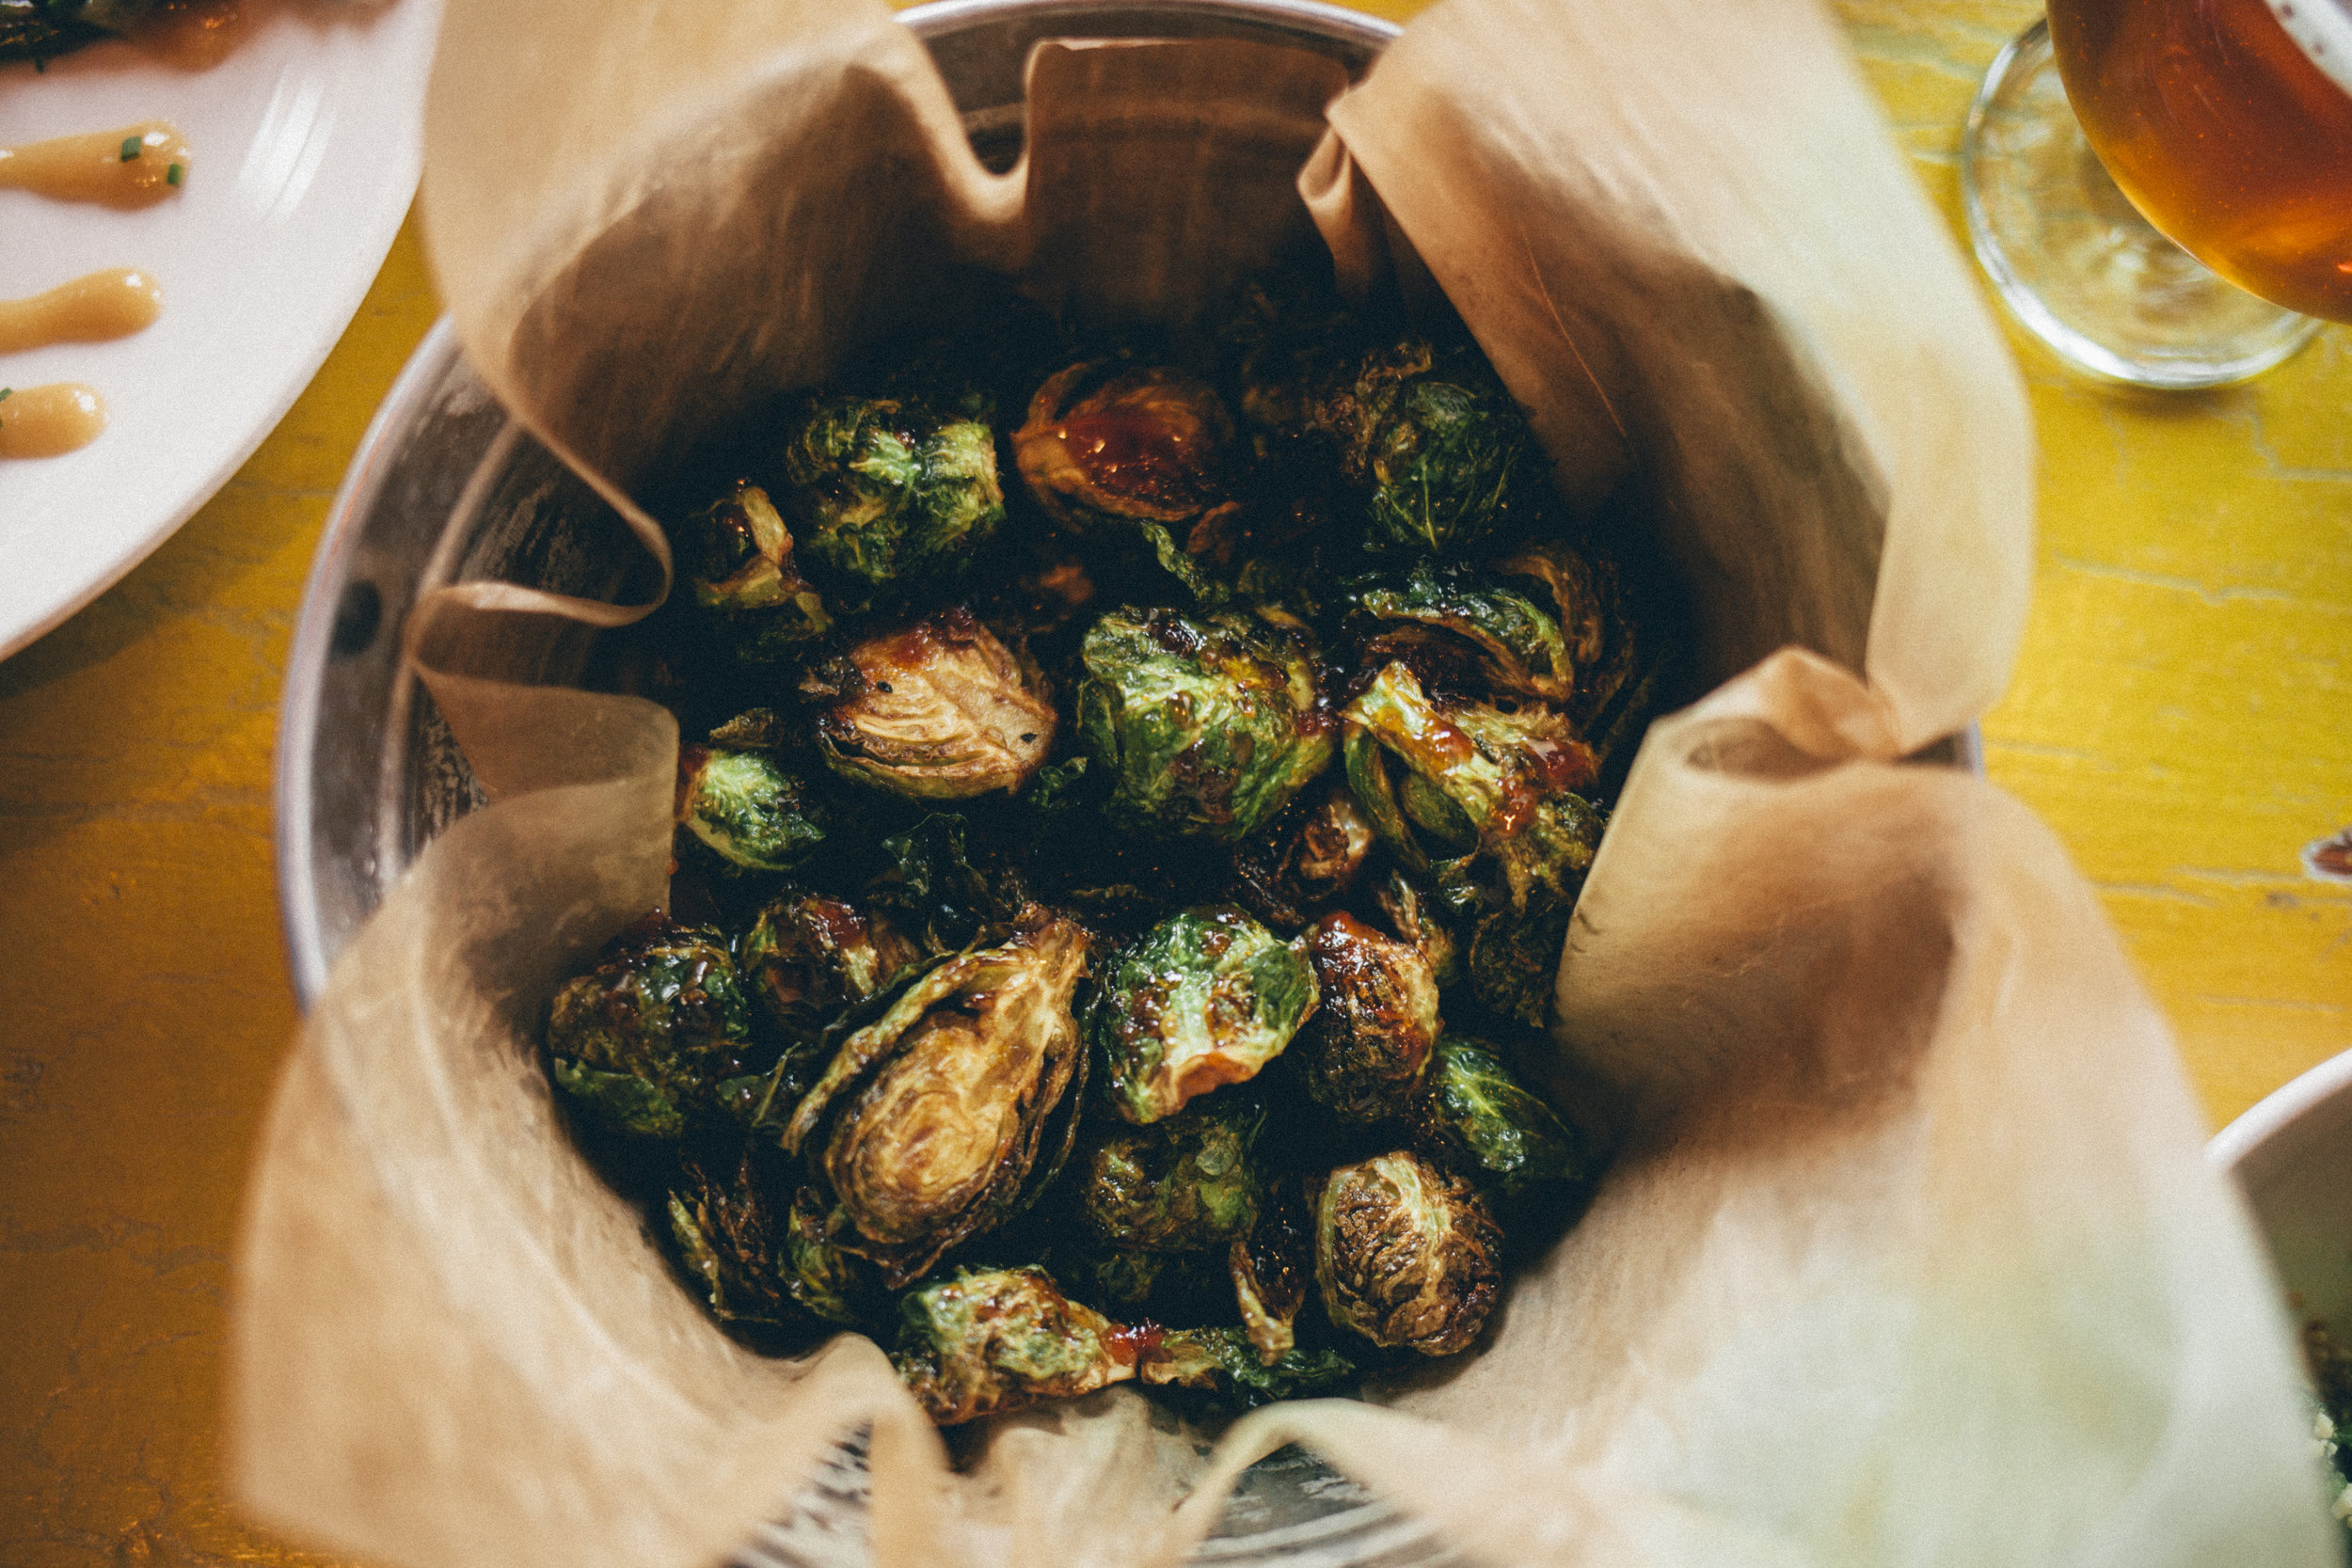 Bostwick Lake Inn's Crispy Brussels Sprouts are like the candy of vegetables. They're THAT good.